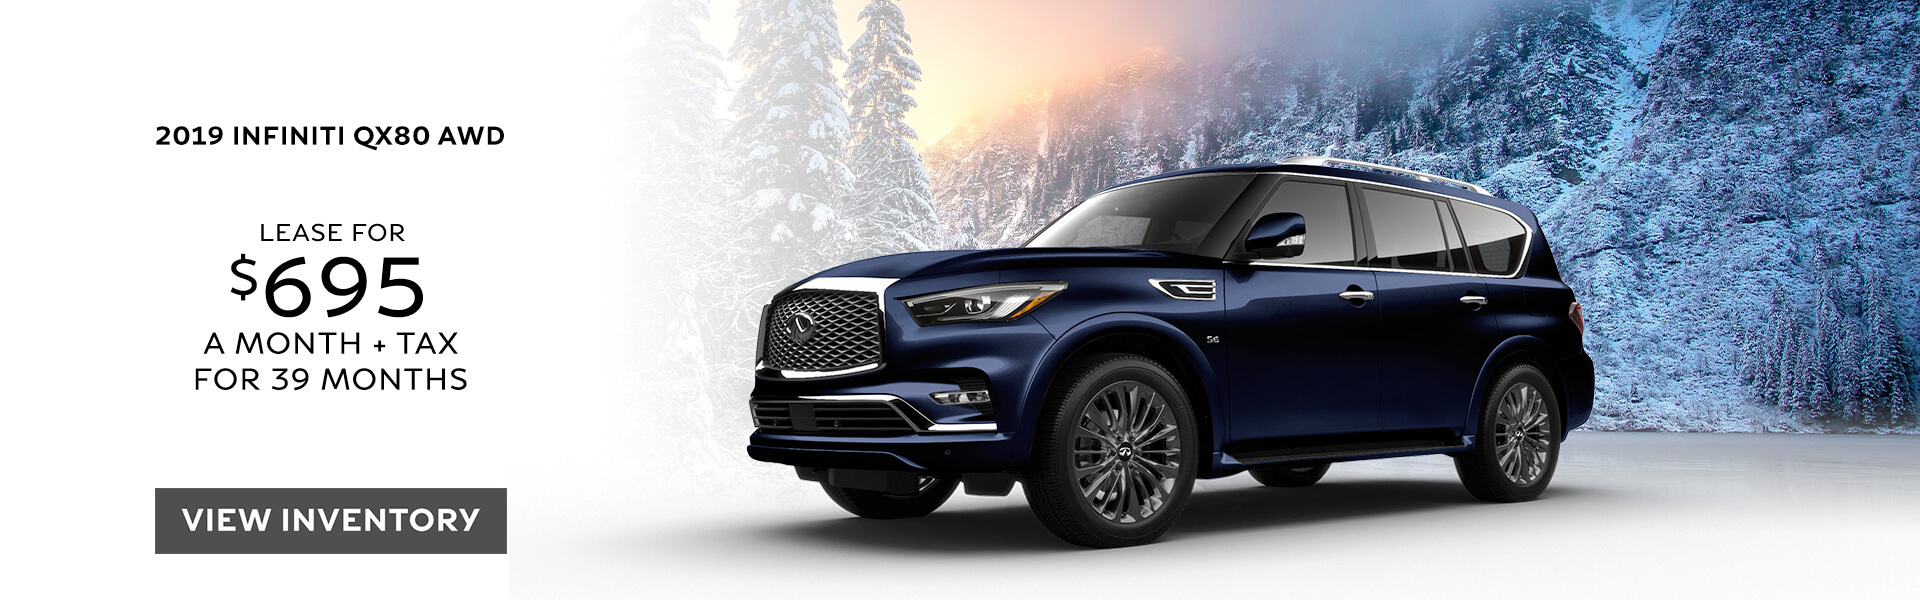 QX80 LUXE - Lease for $695